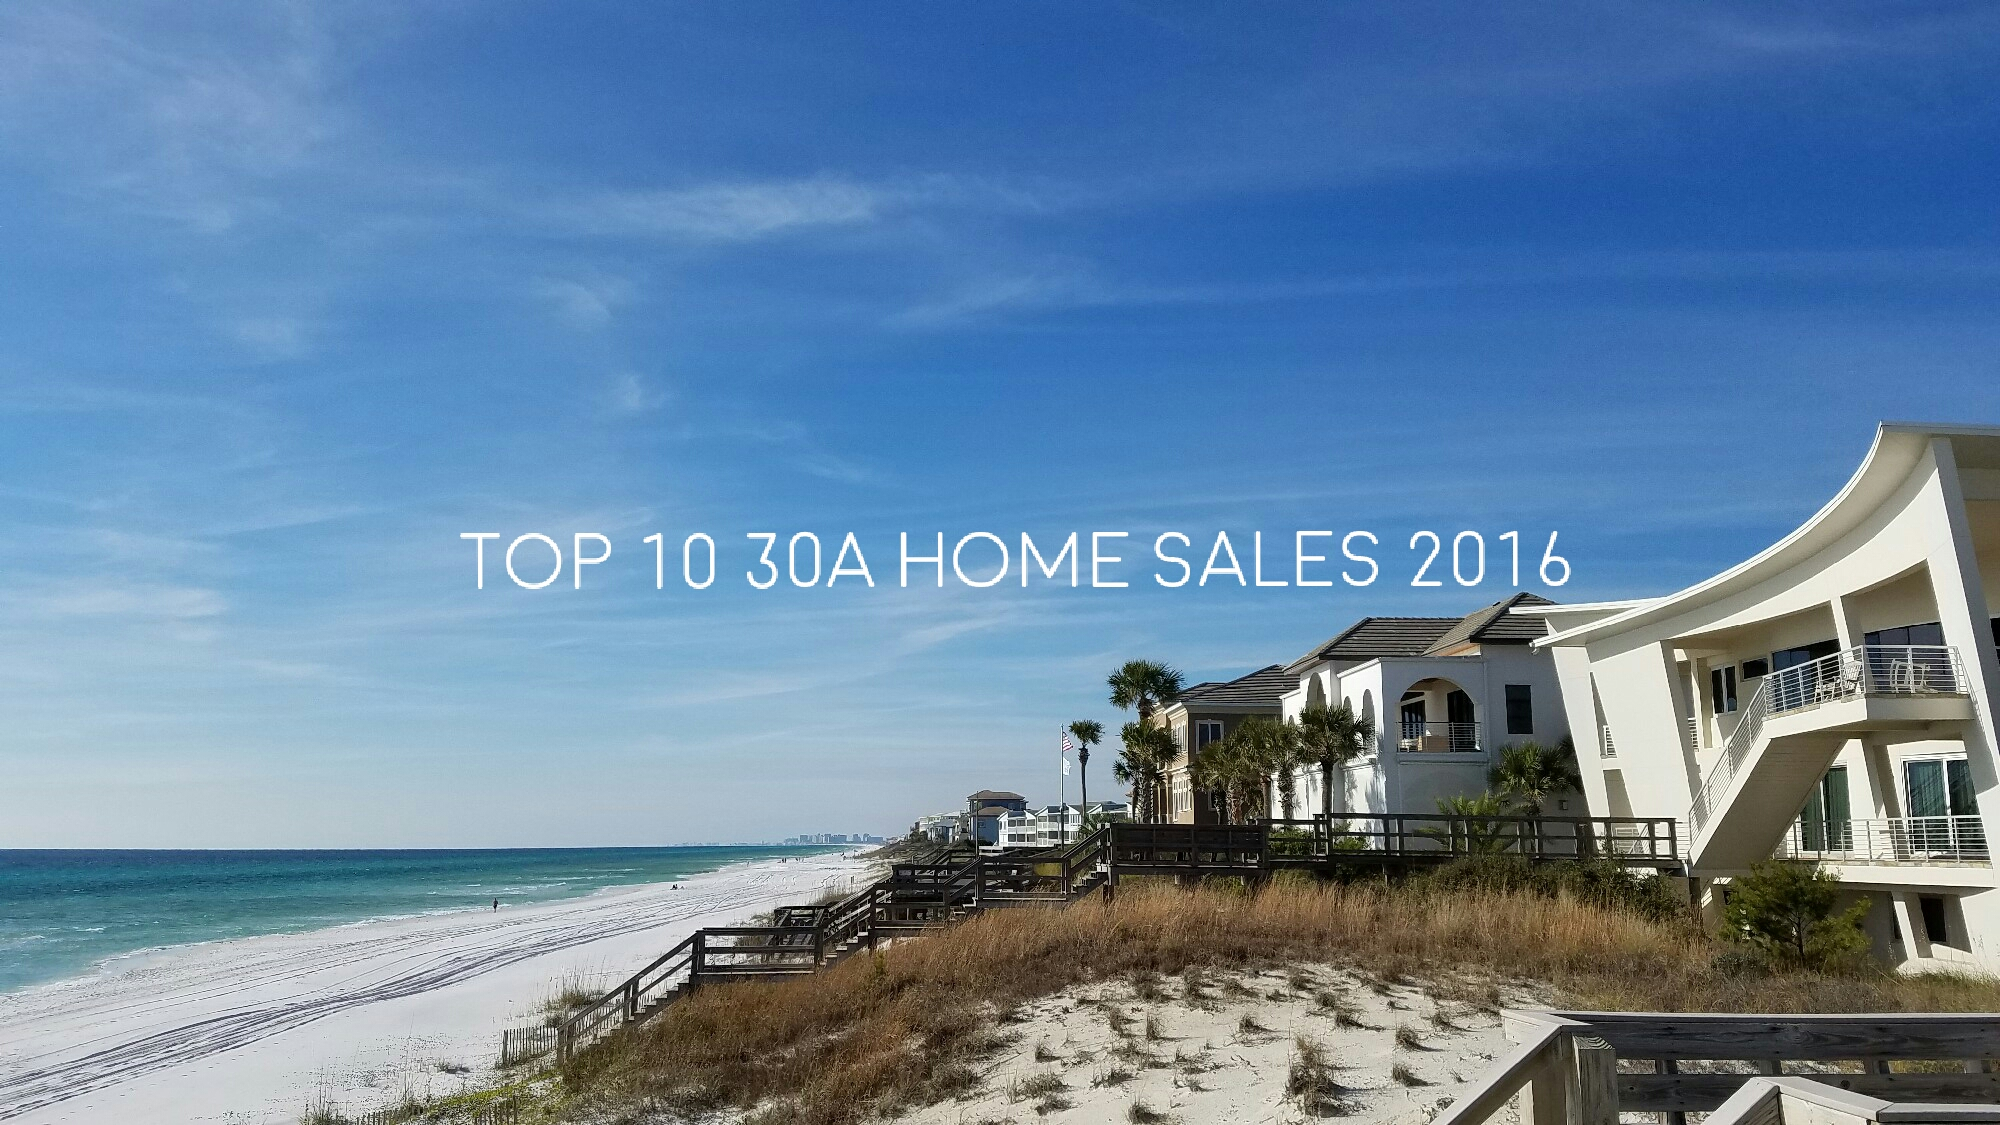 30A Top 10 home sales